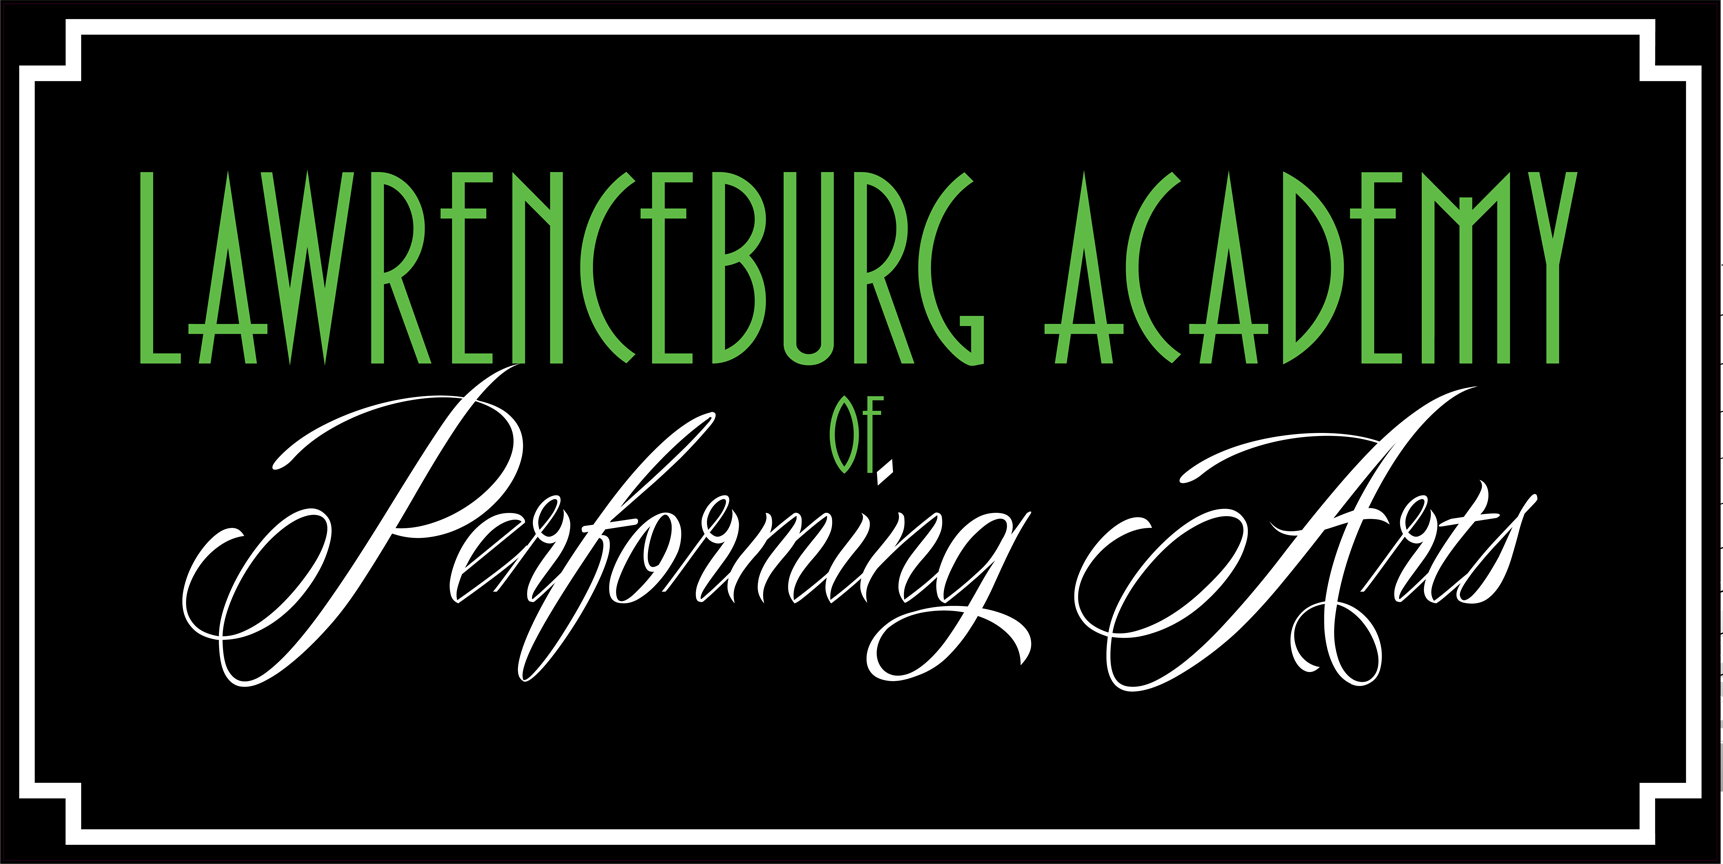 Lawrenceburg Academy of Performing Arts